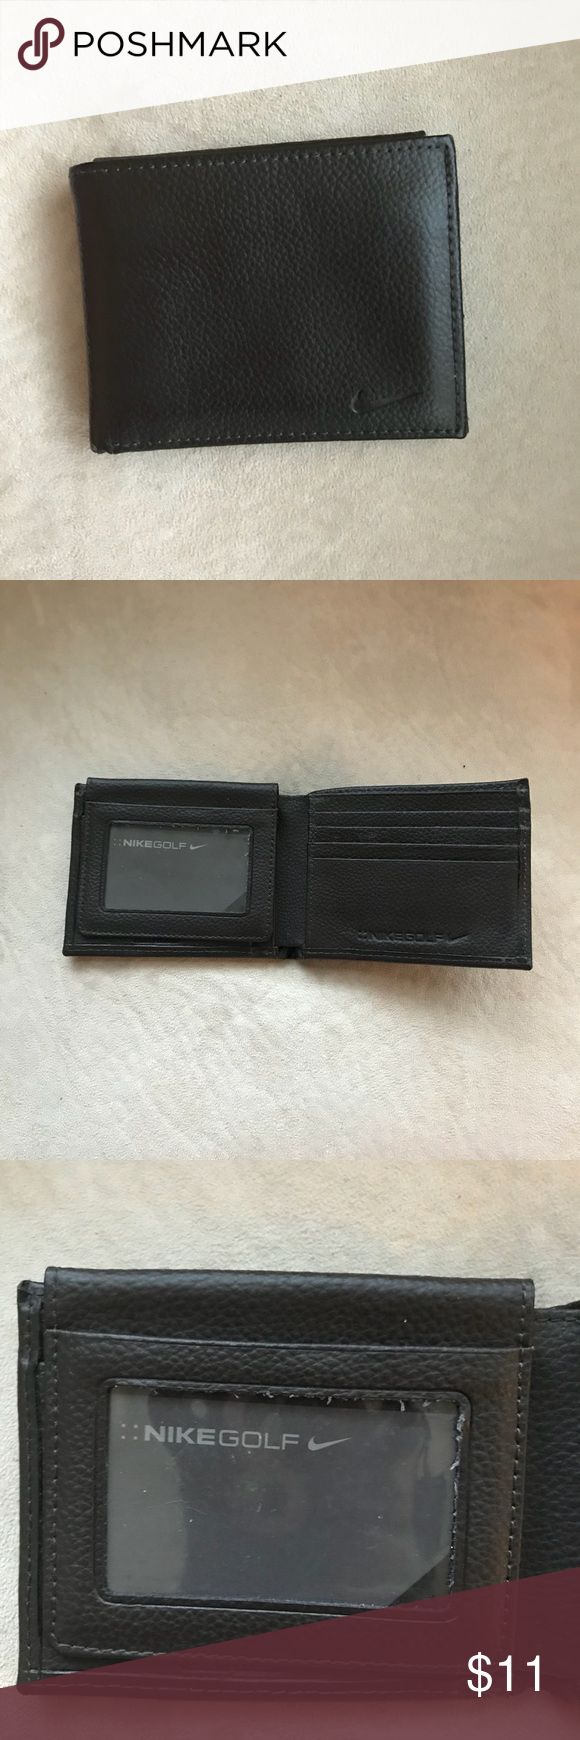 Men's wallet Very good condition Nike dark brown men's wallet 5 card slots and 3 ID windows, wide pocket for cash Nike Bags Wallets